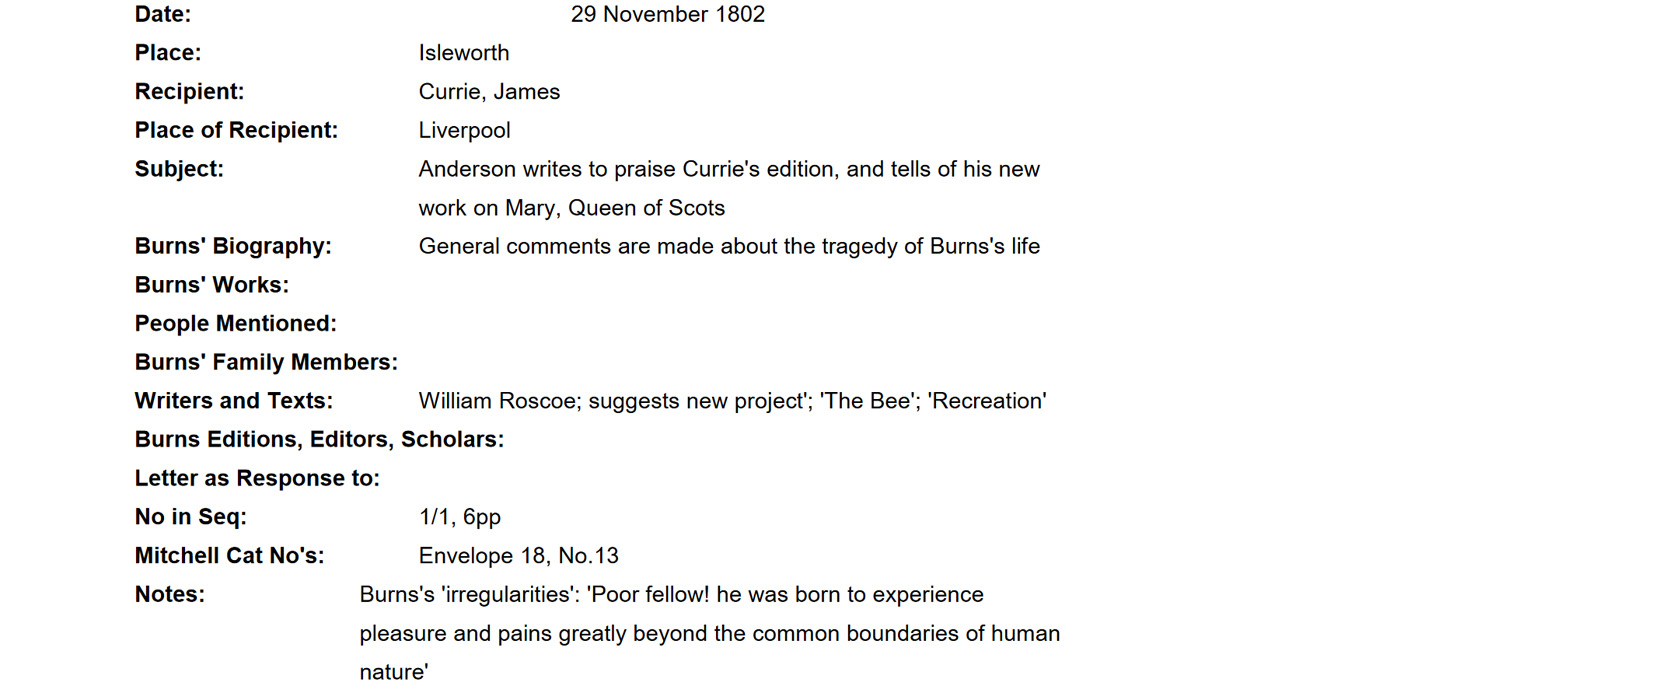 Correspondence of James Currie